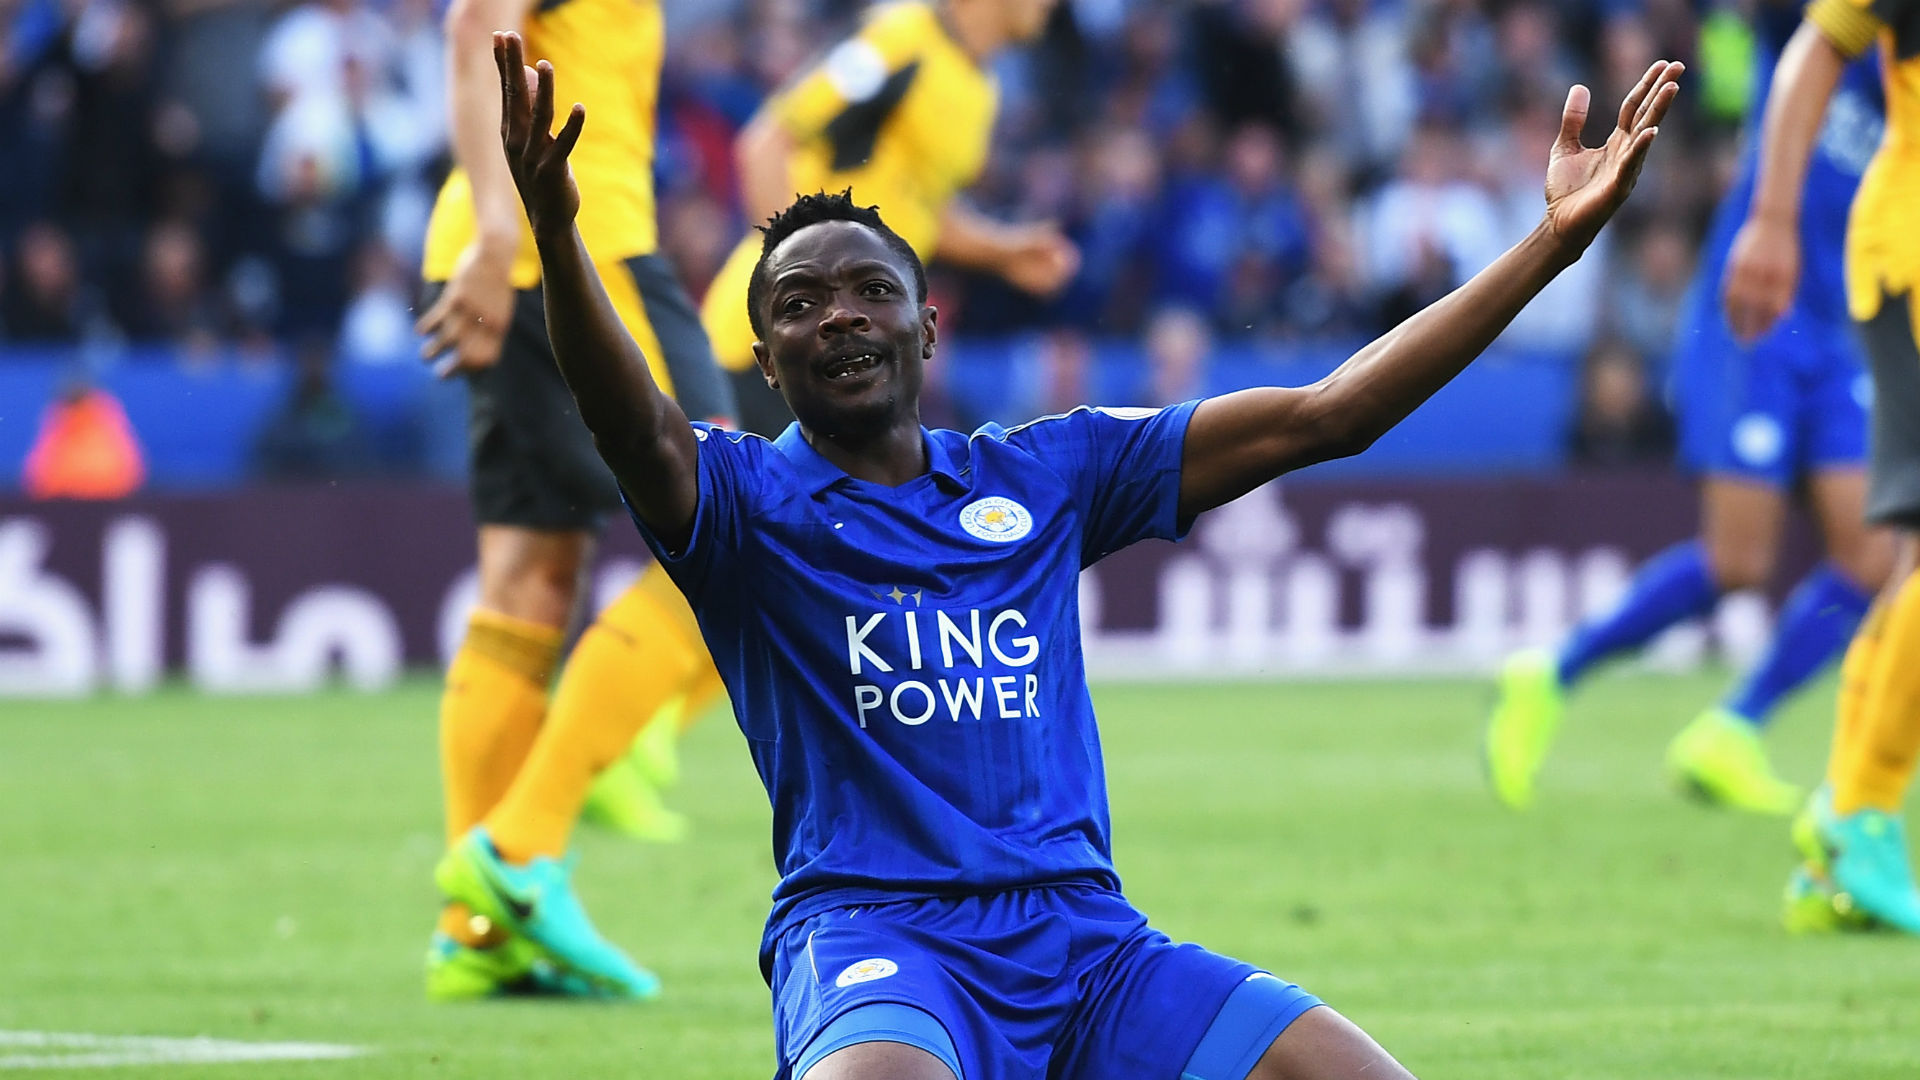 Image result for ahmed musa in leicester city colors